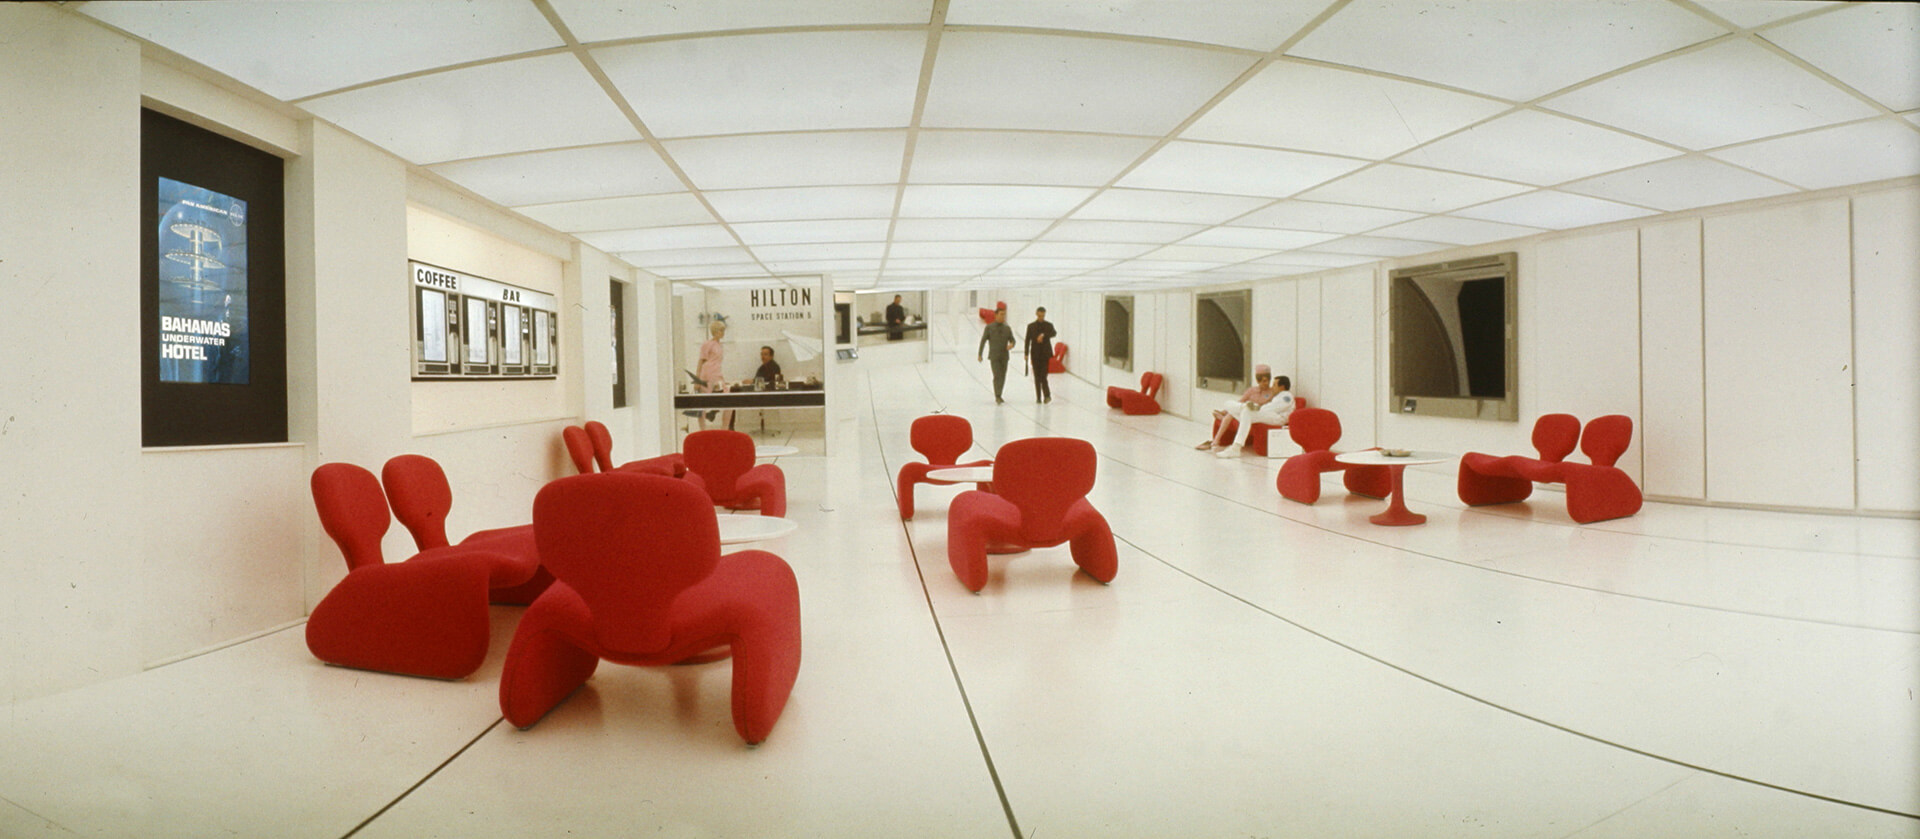 A scene on Space Station V, with red Djinn chairs, in 2001: A Space Odyssey (1968, Dir. Stanley Kubrick) | Space Odyssey exhibition | Stanley Kubrick | STIRworld